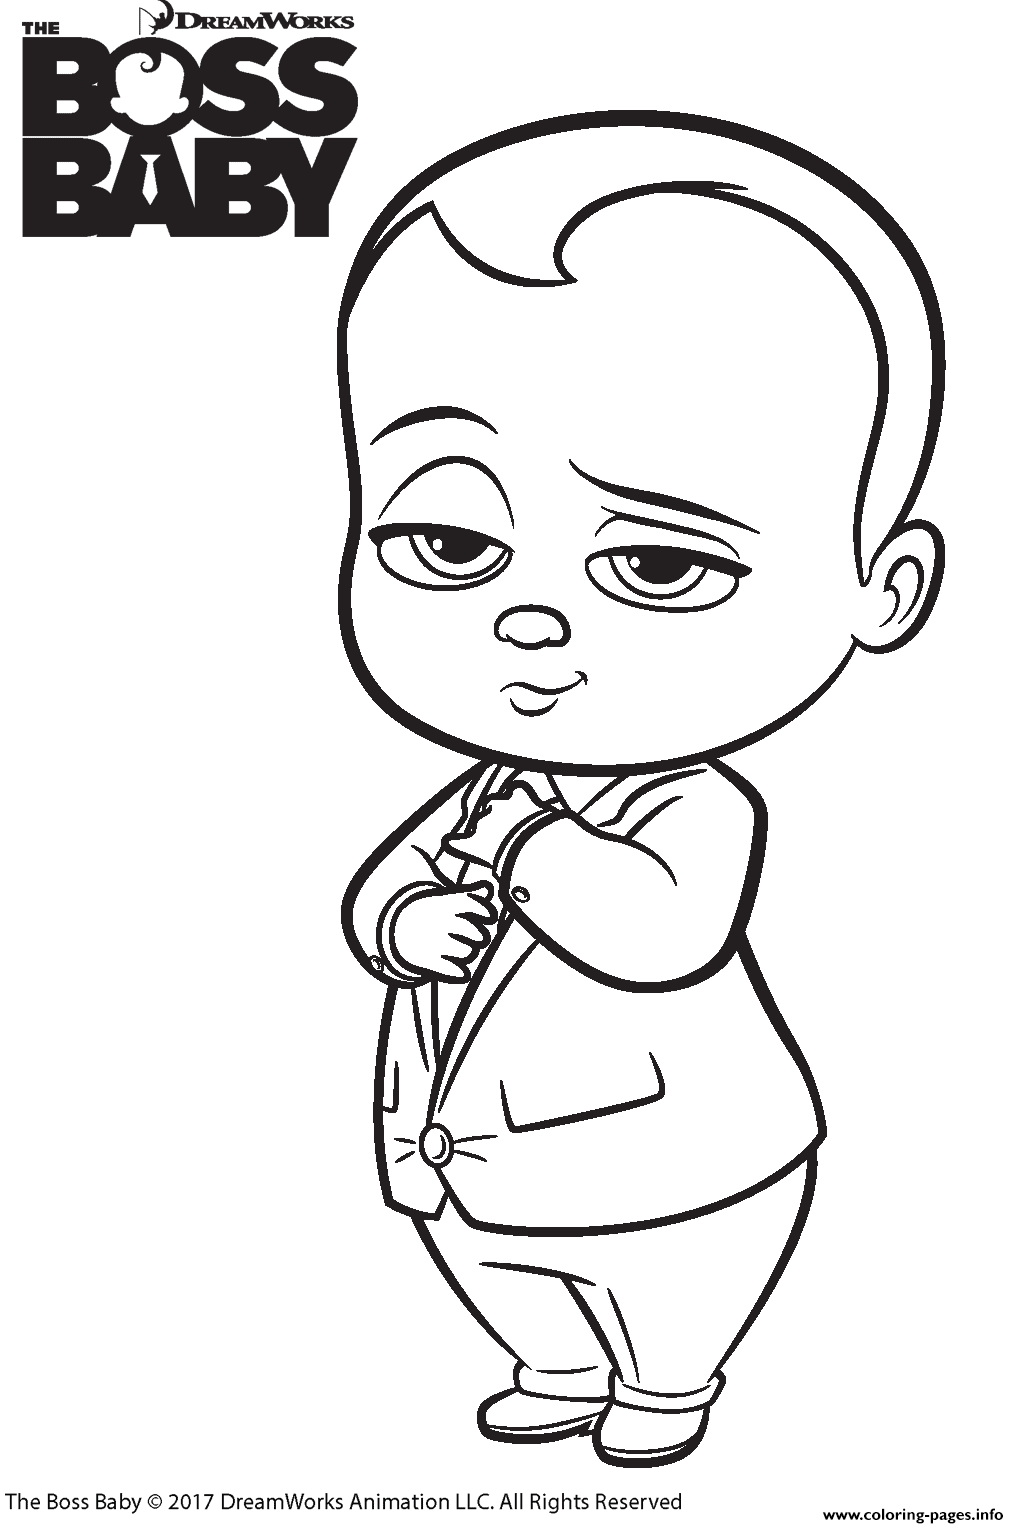 baby pictures coloring pages - the boss baby 2 coloring pages printable